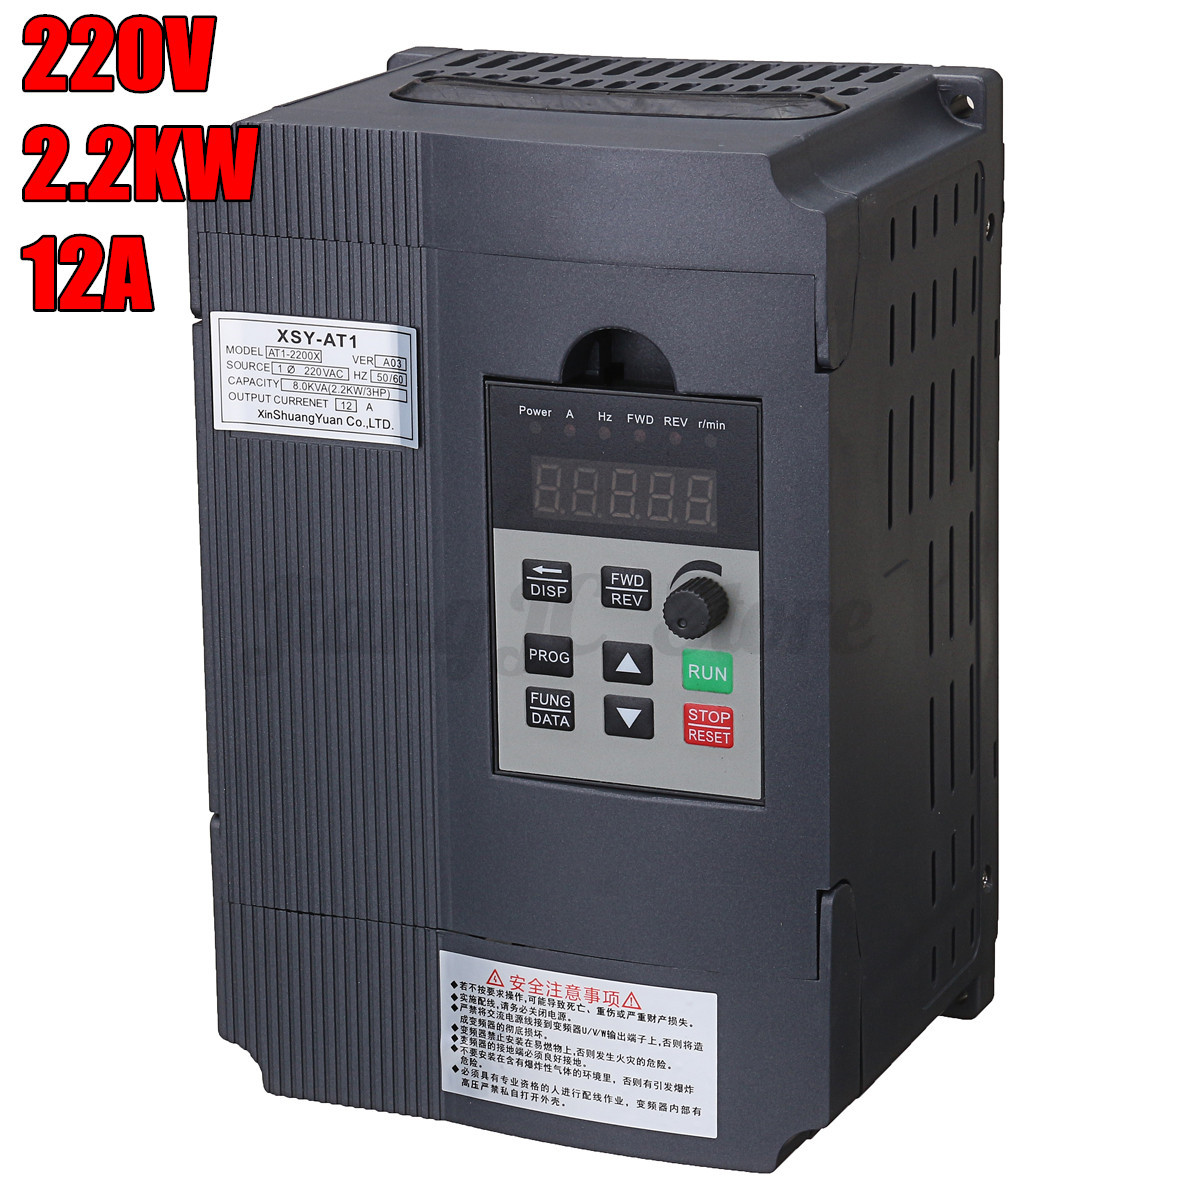 Variable frequency drive inverter 1 5kw 2 2kw 380v 220v for Inverter for 3 phase motor